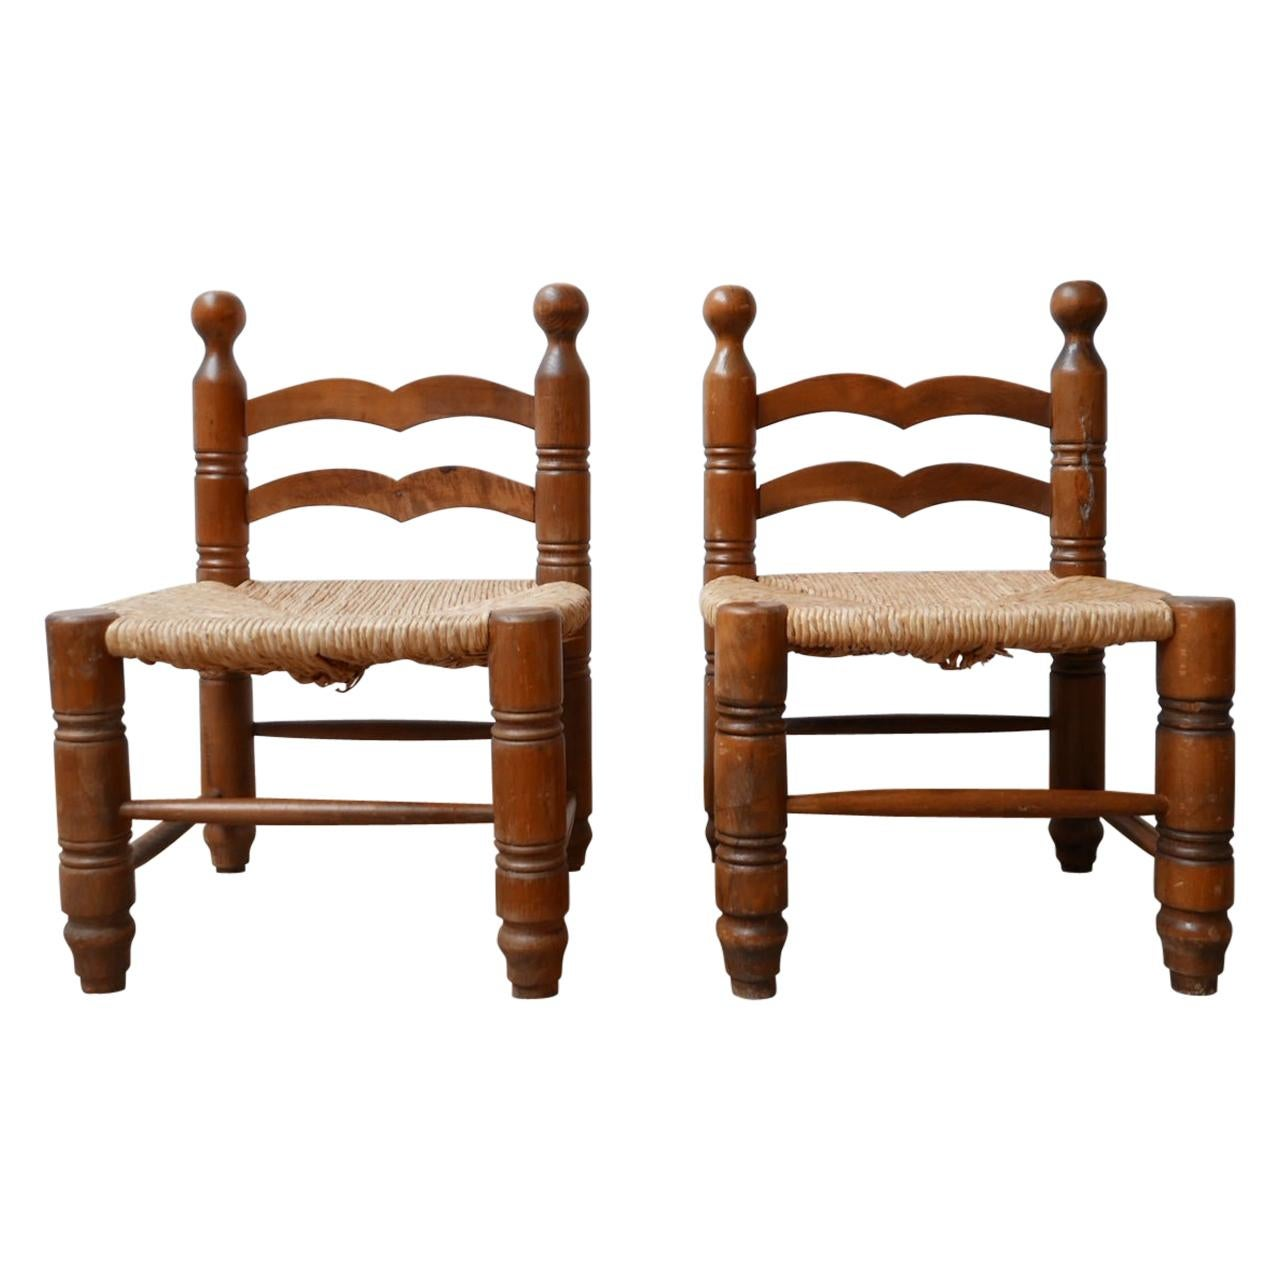 Pair of Midcentury Low Rush Armchairs Attributed to Charles Dudouyt